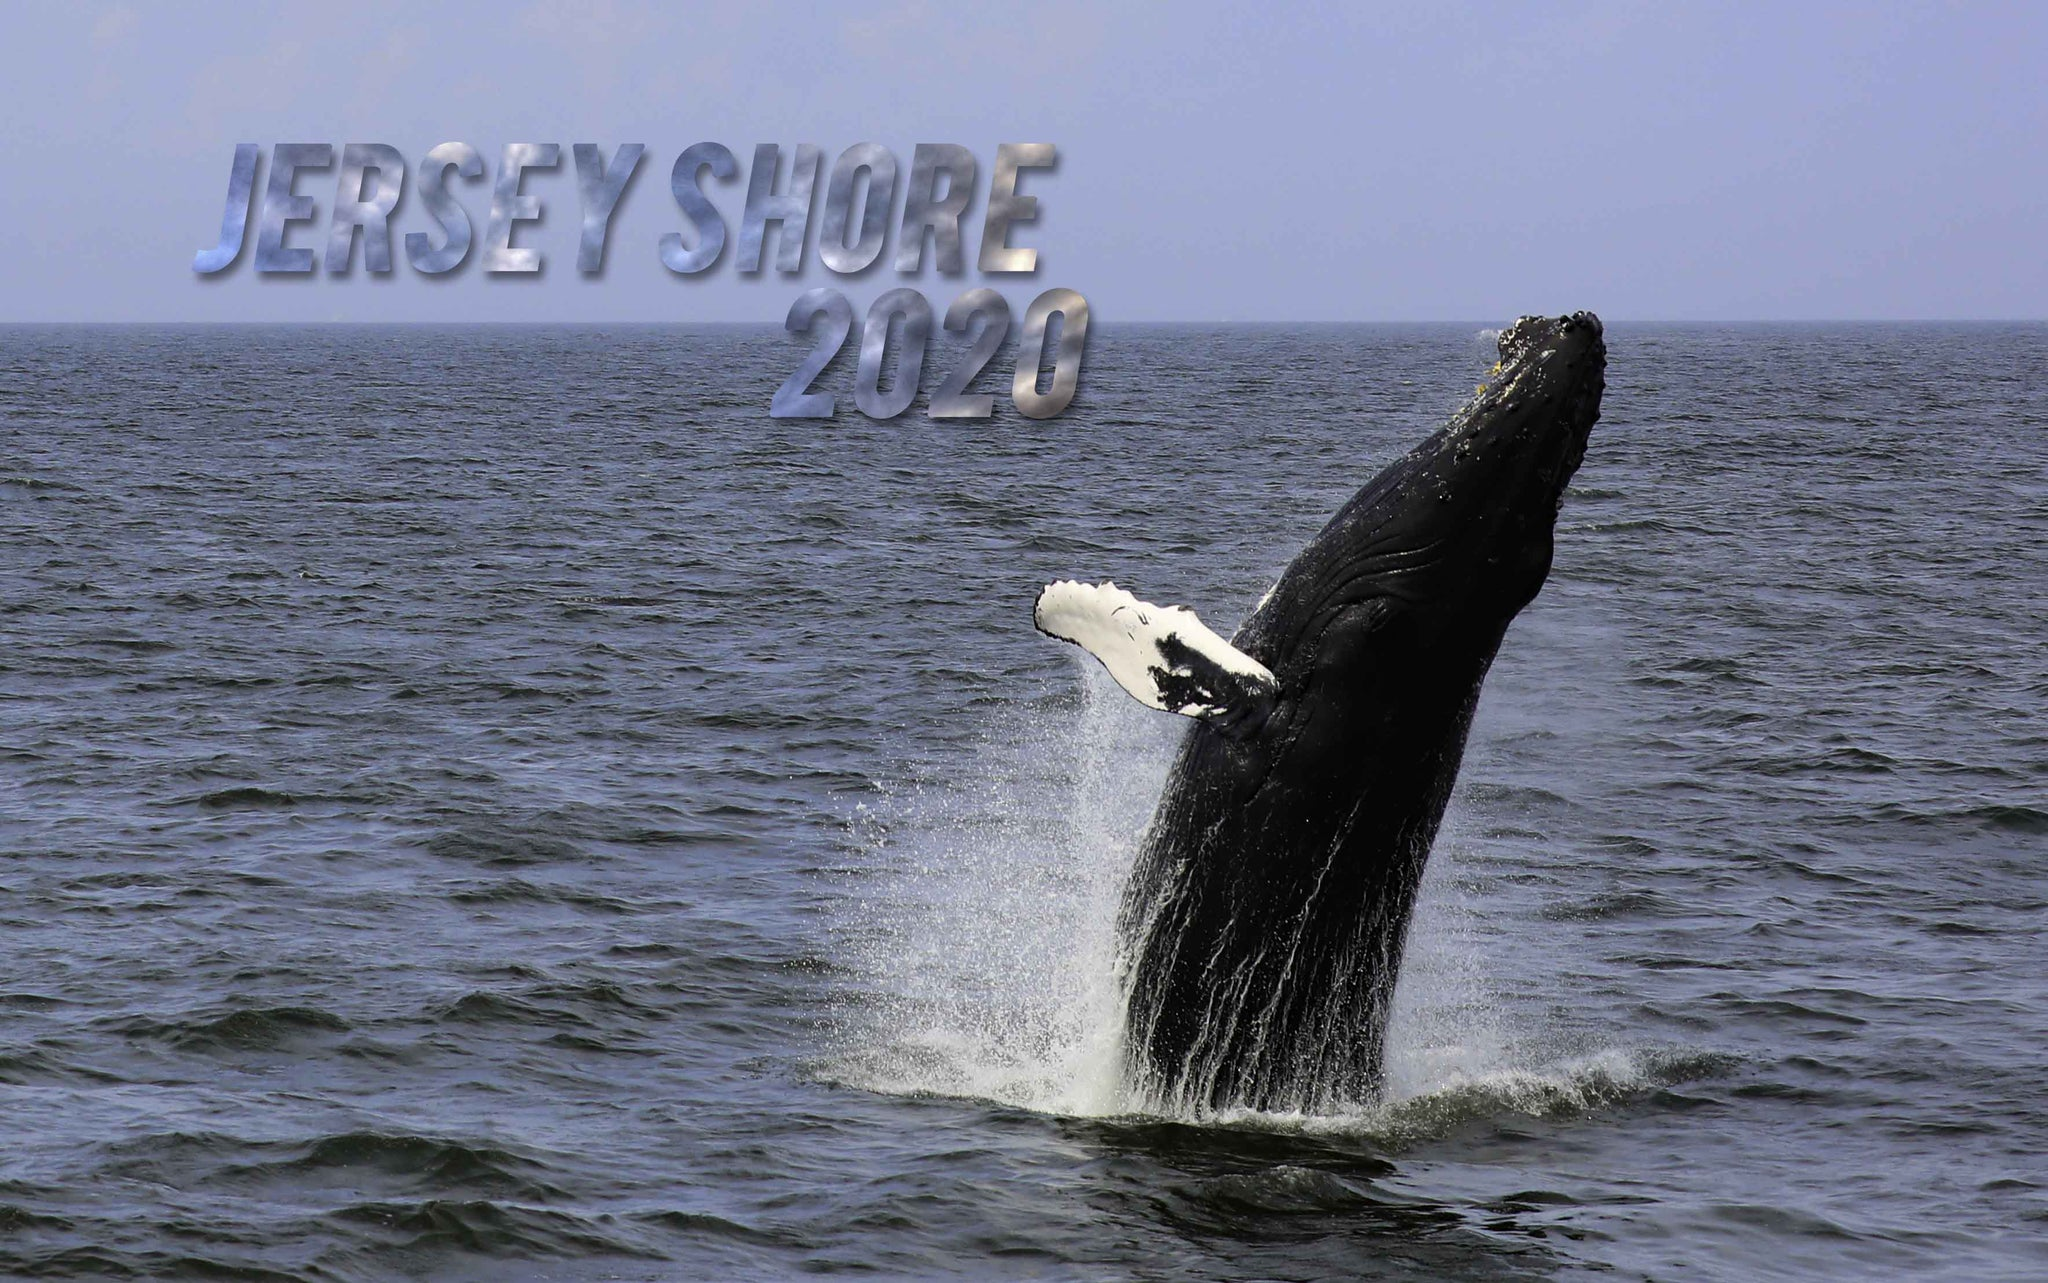 2020 Jersey Shore calendar with bonus  months October 2019 - December 2020